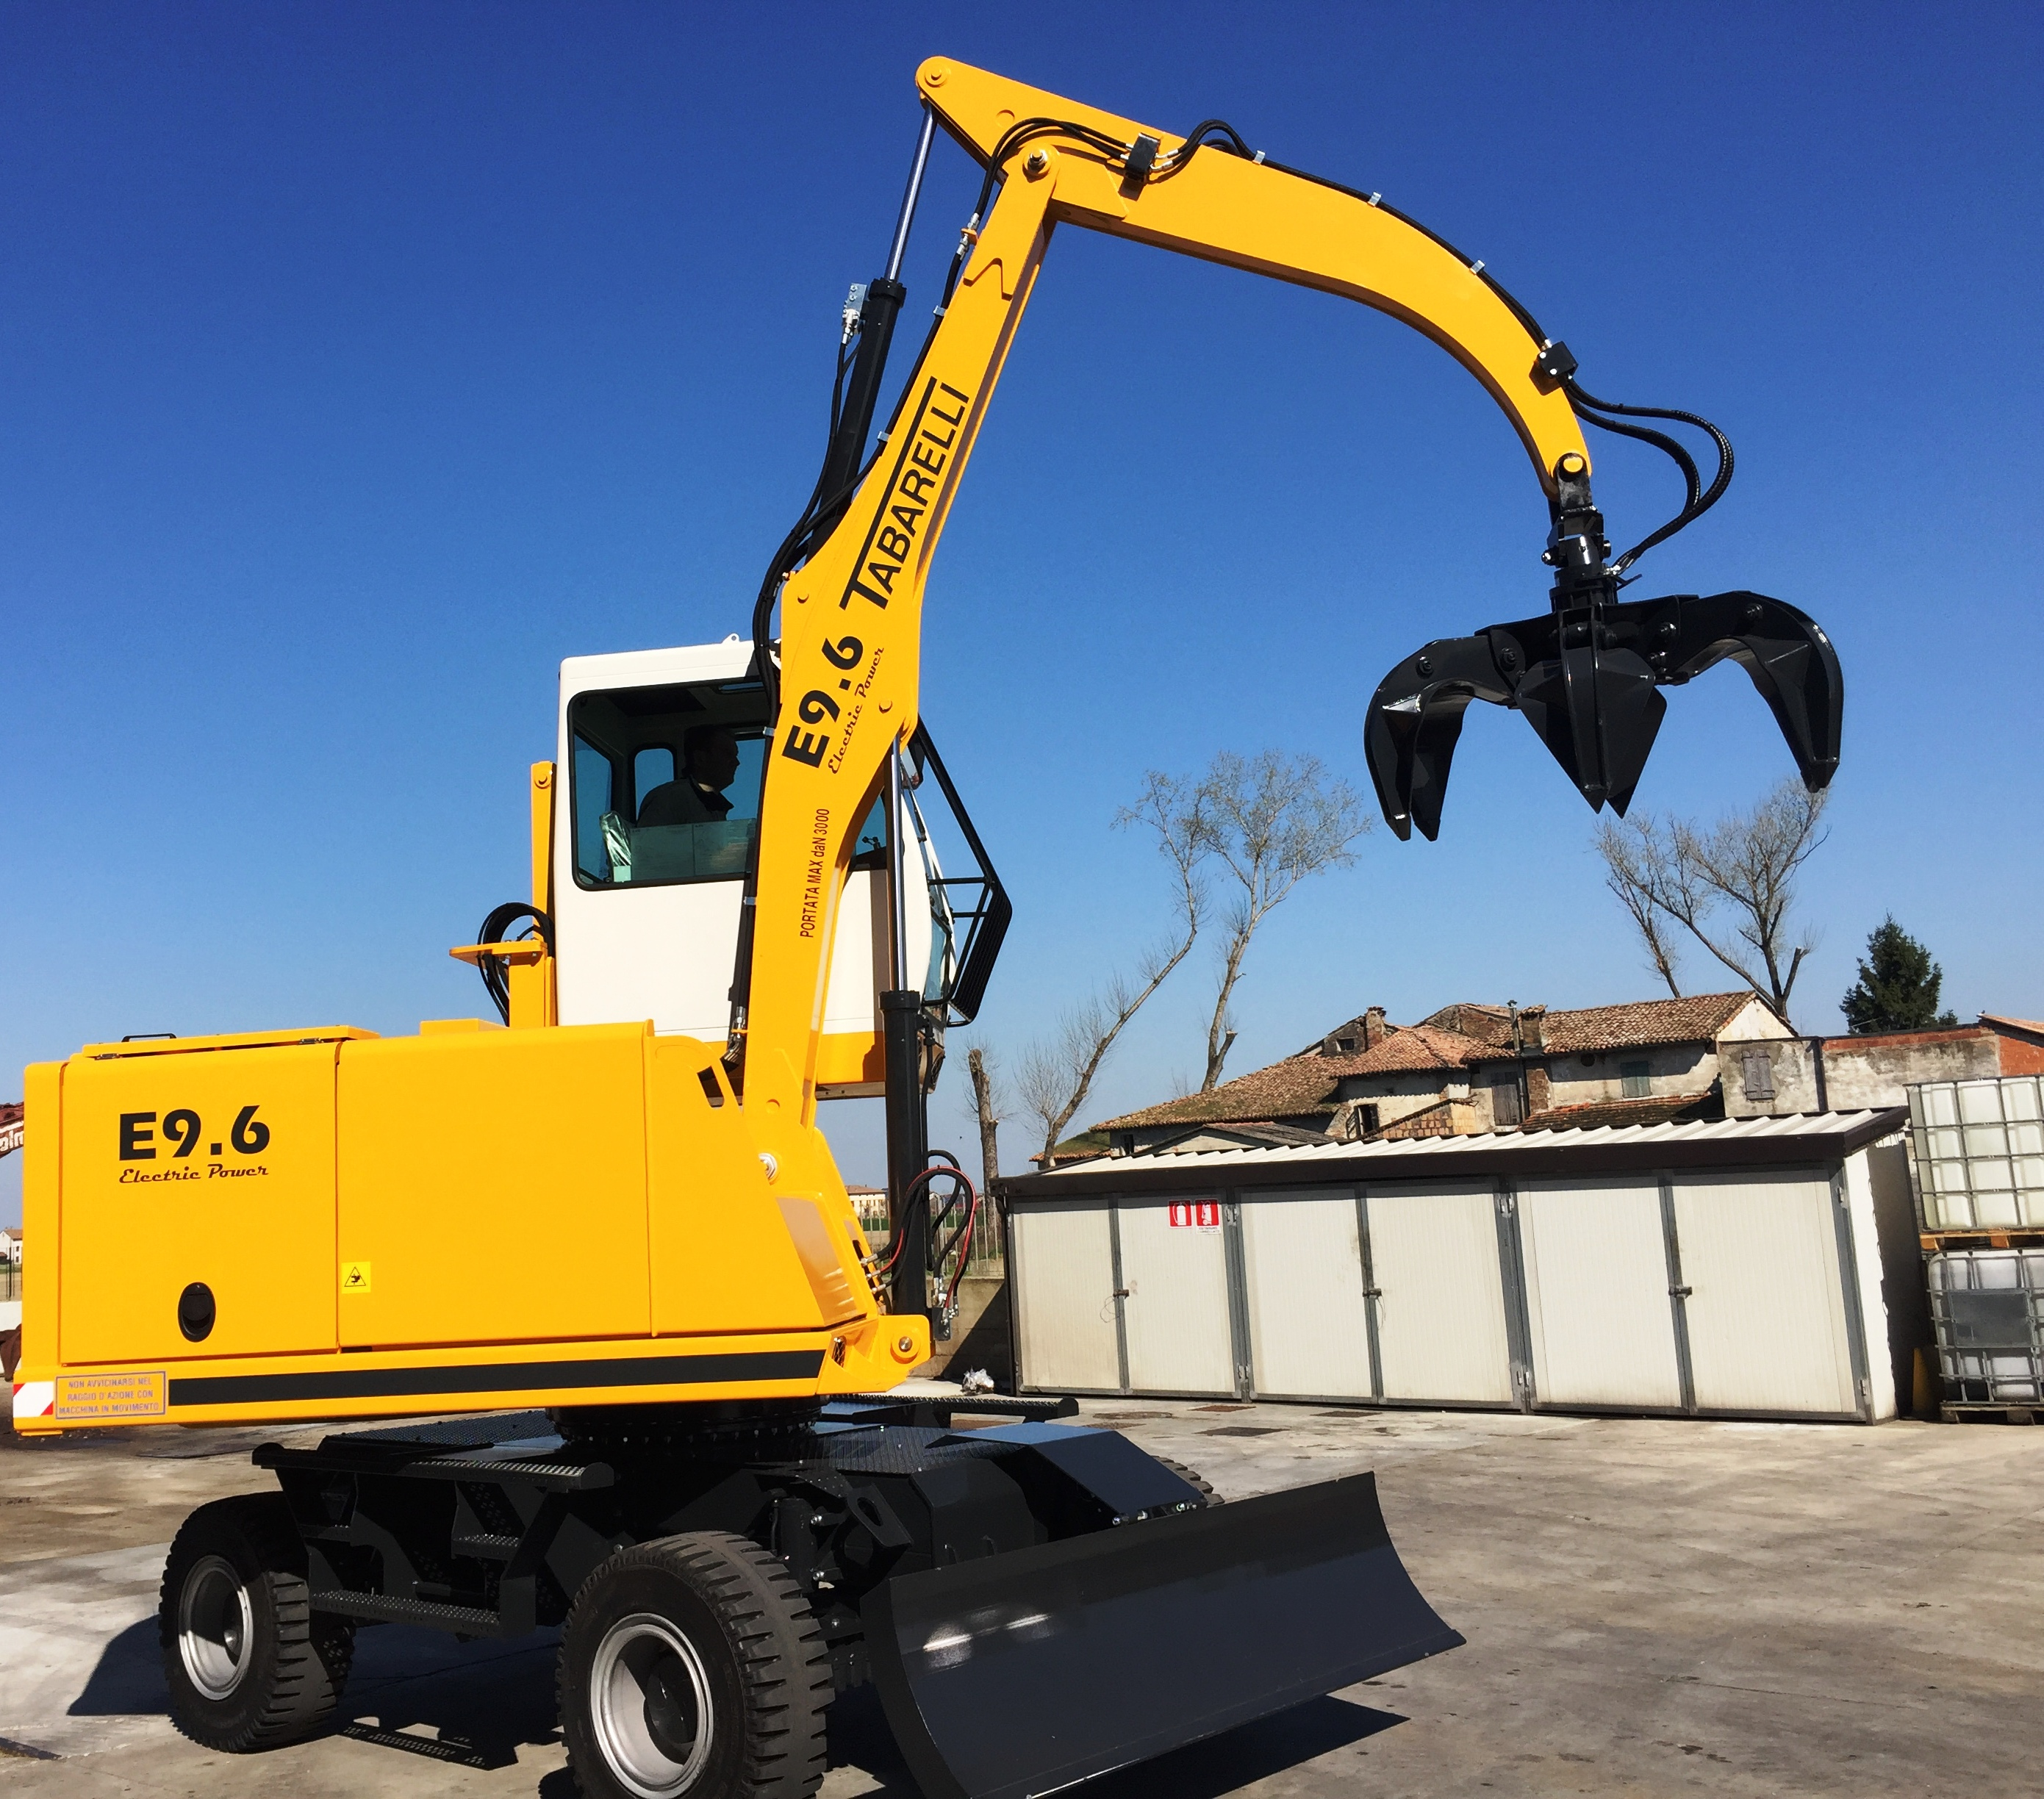 Electric loader tabarelli E9.6